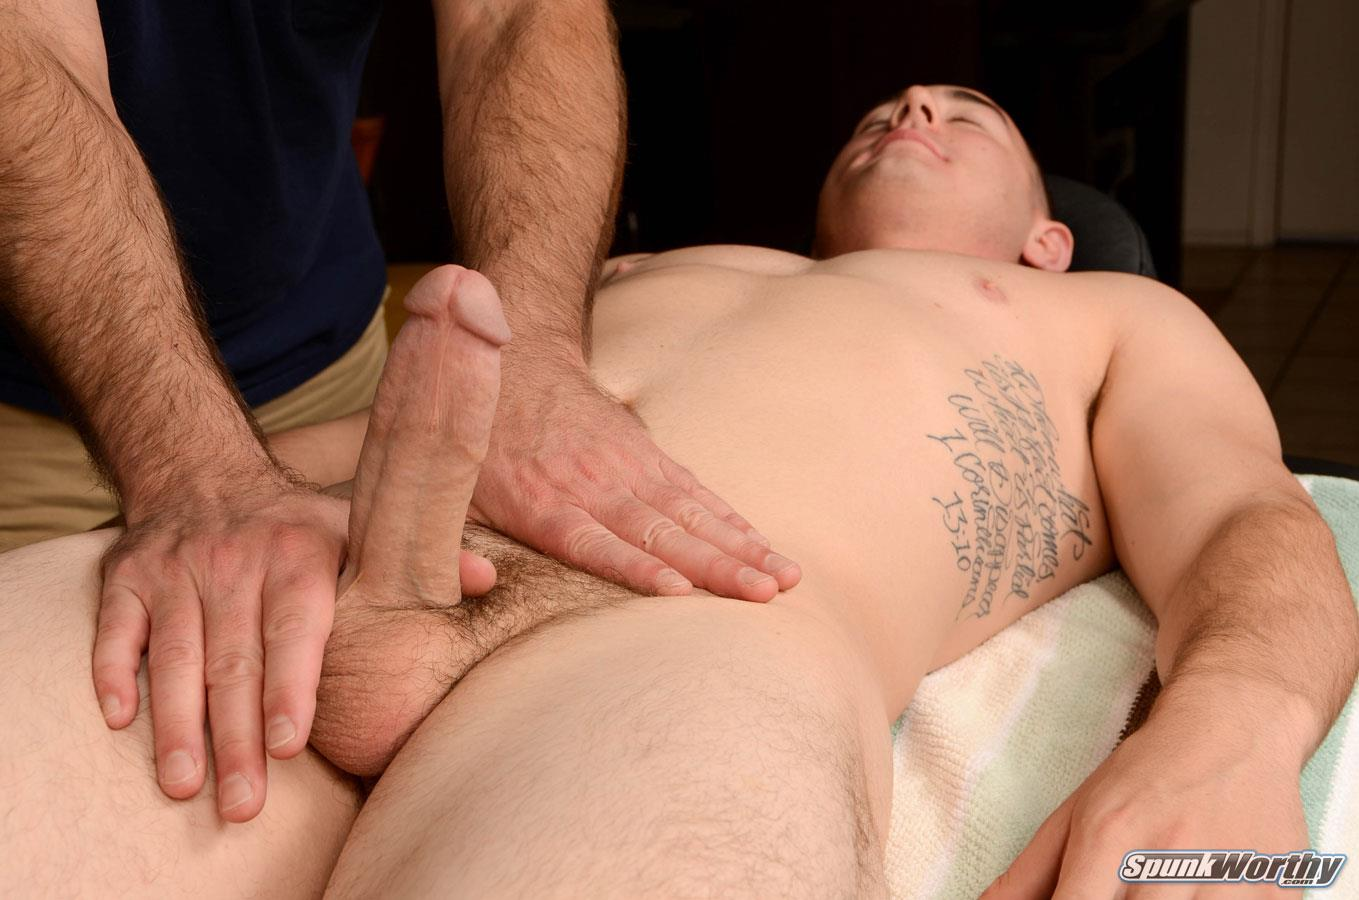 SpunkWorthy-Damian-Straight-Marine-Gets-a-Handjob-From-A-Guy-Amateur-Gay-Porn-11 Straight 22 Year Old Marine Gets A Handjob From A Guy